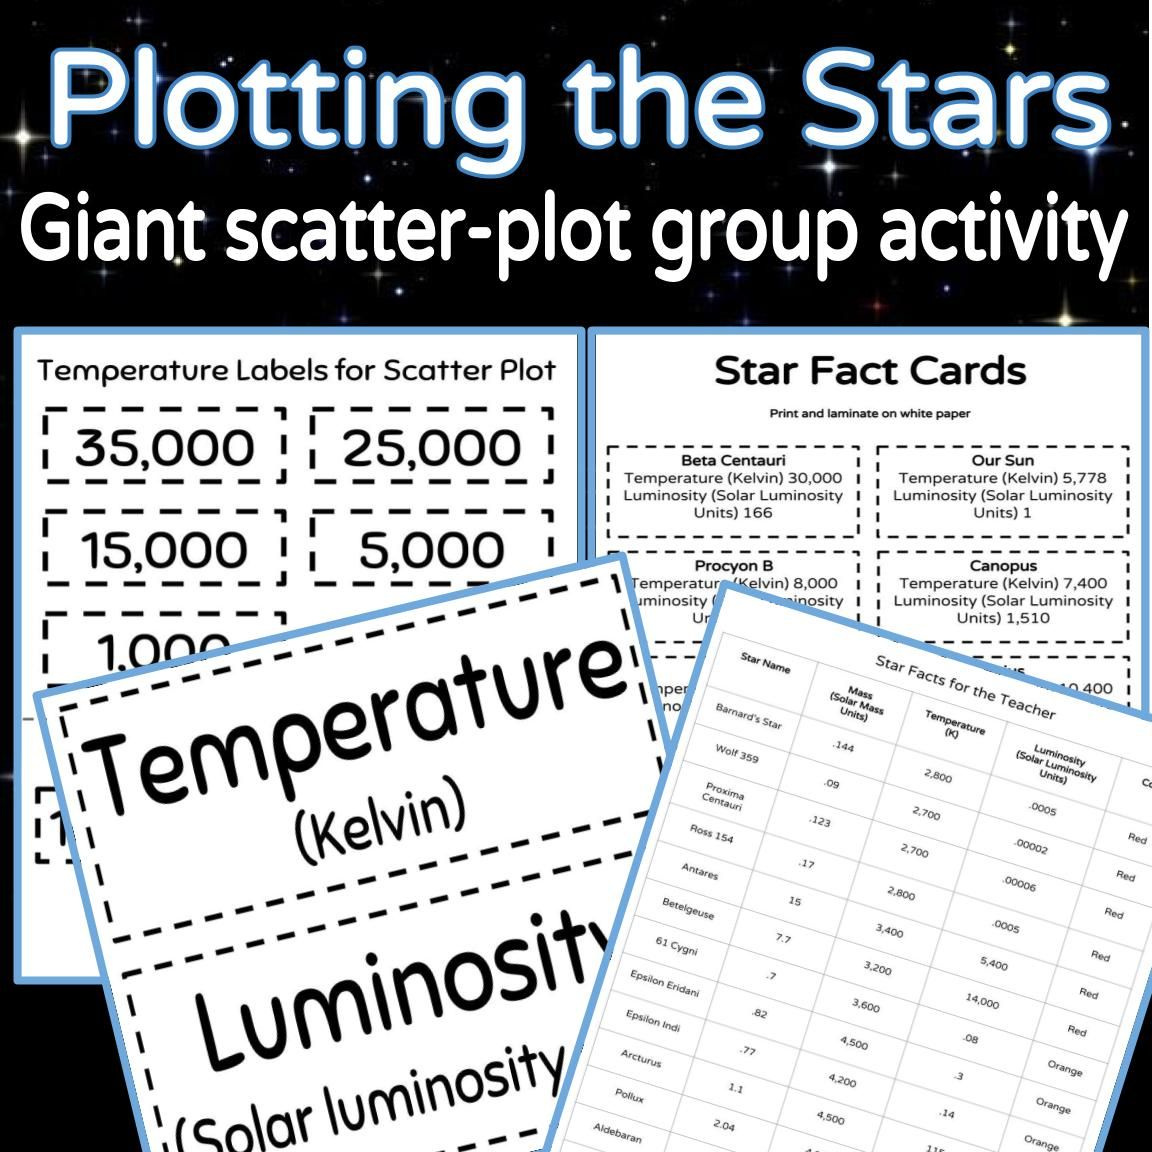 Giant Scatter Plot Activity Life Cycle Of A Star Hs Ess1